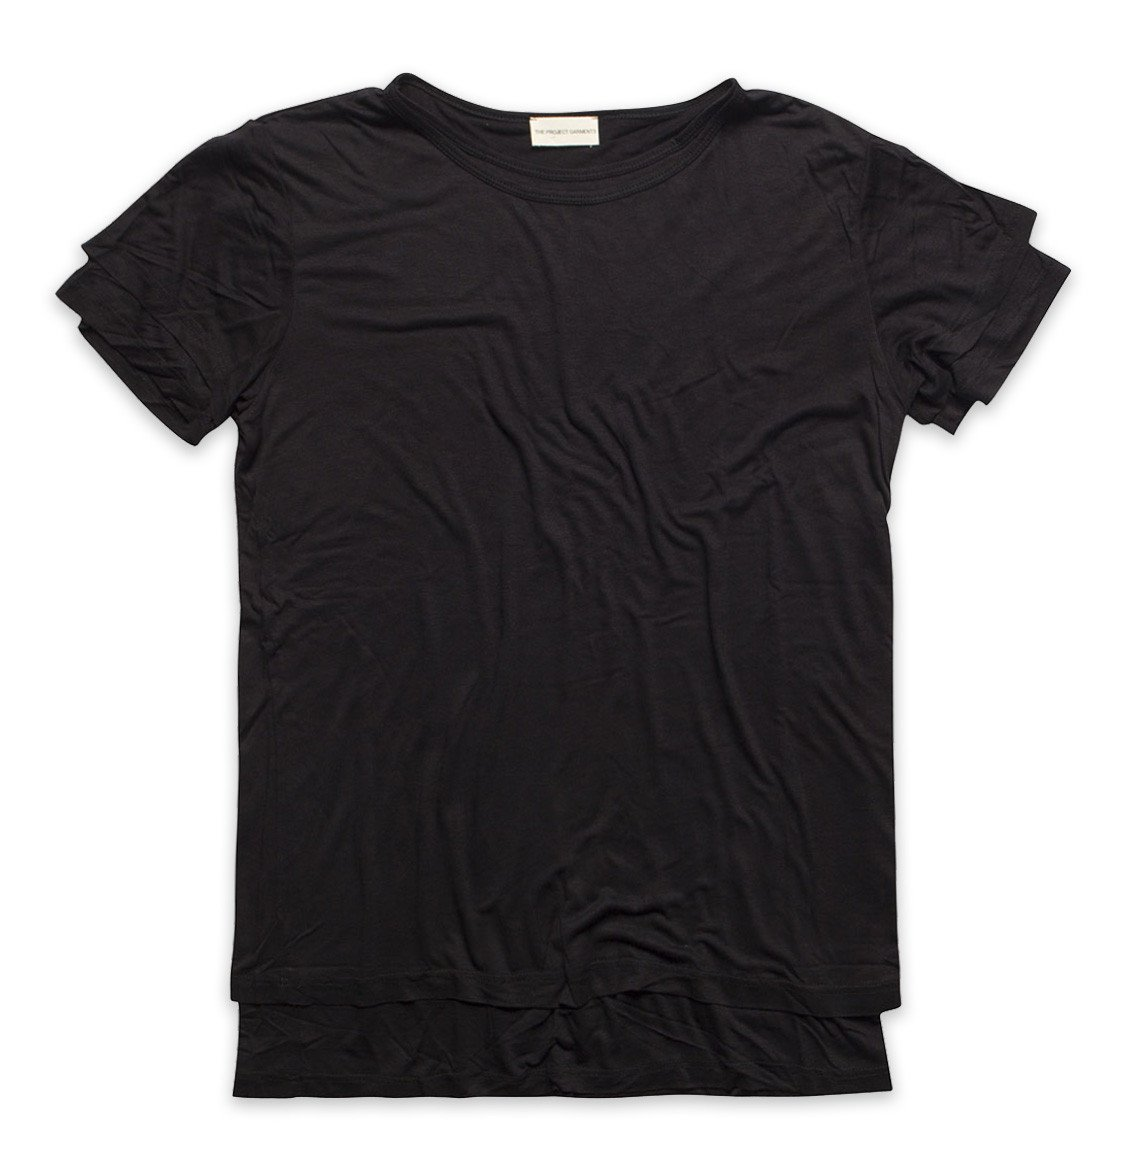 The Project Garments Silk Blend Double Layer Crew Neck T-shirt Black